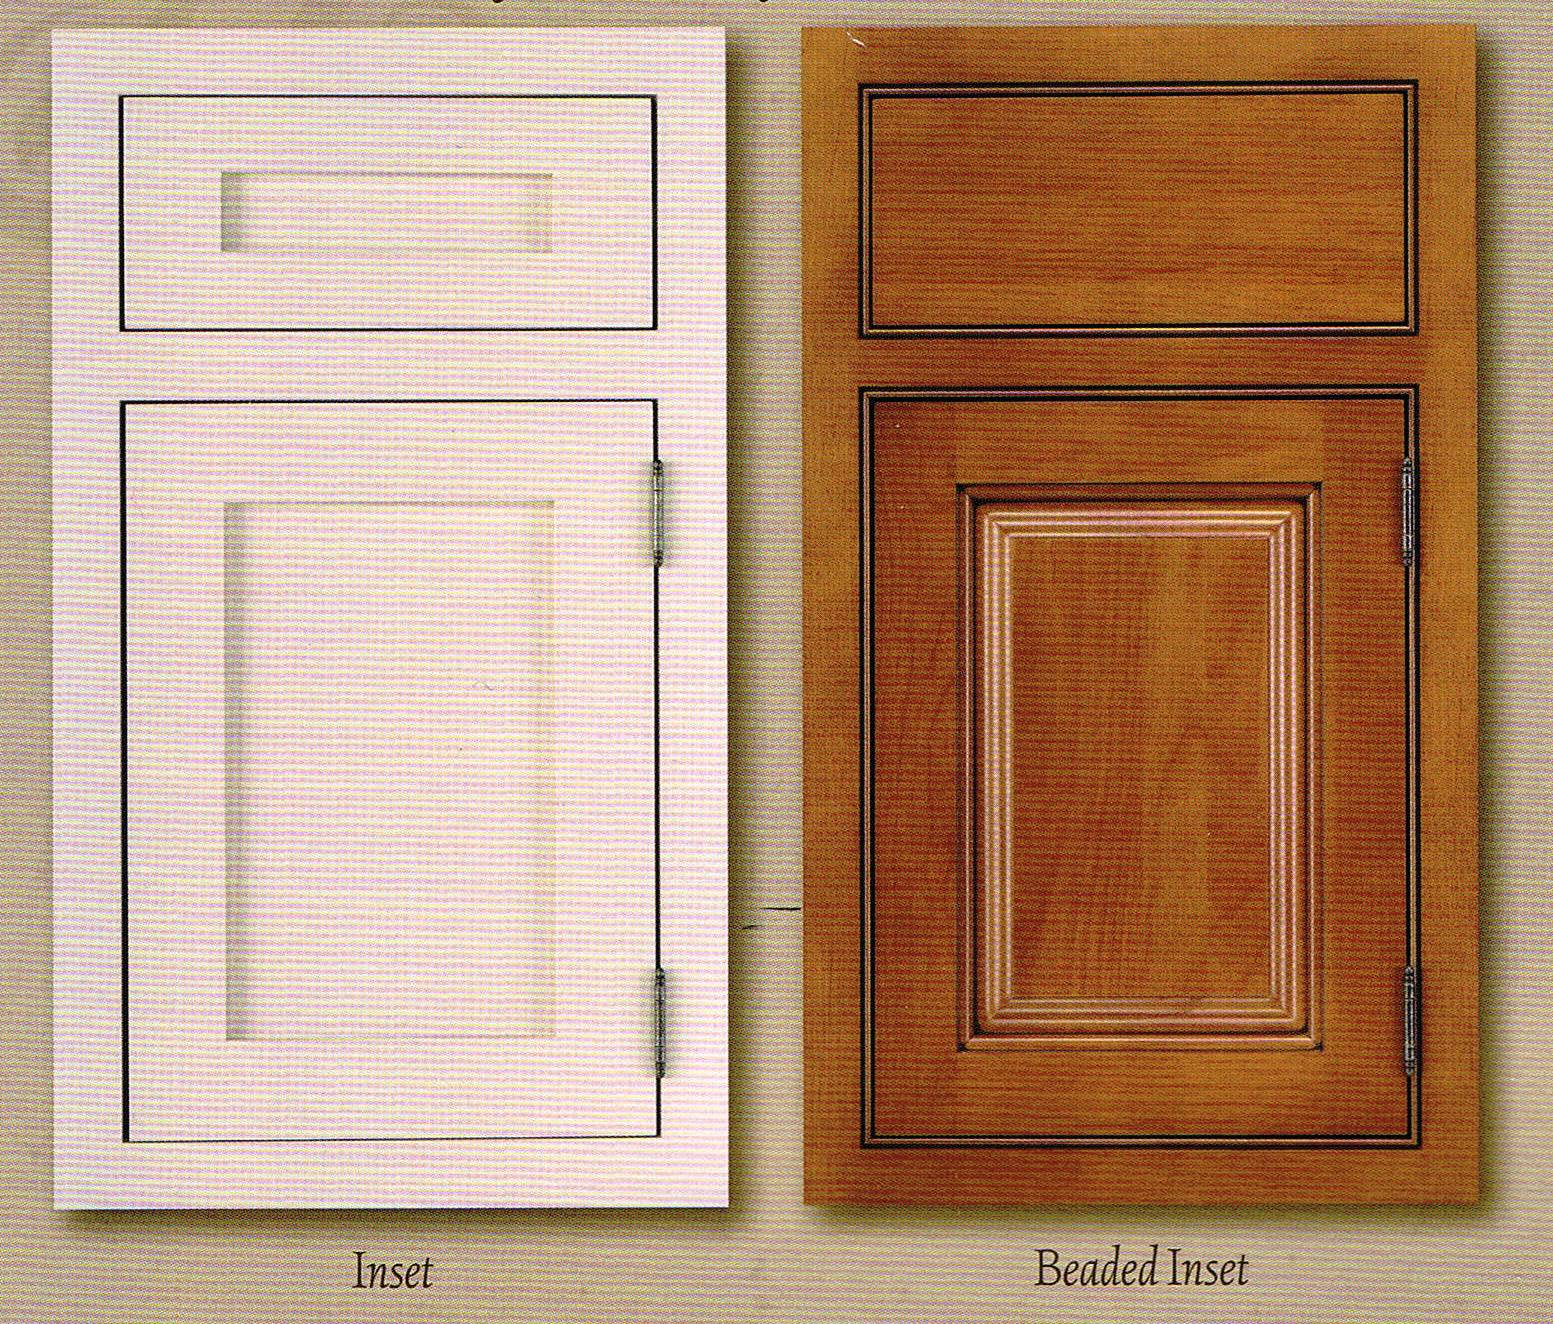 how to select kitchen cabinets cabinetry overlay styles - White Inset Kitchen Cabinets